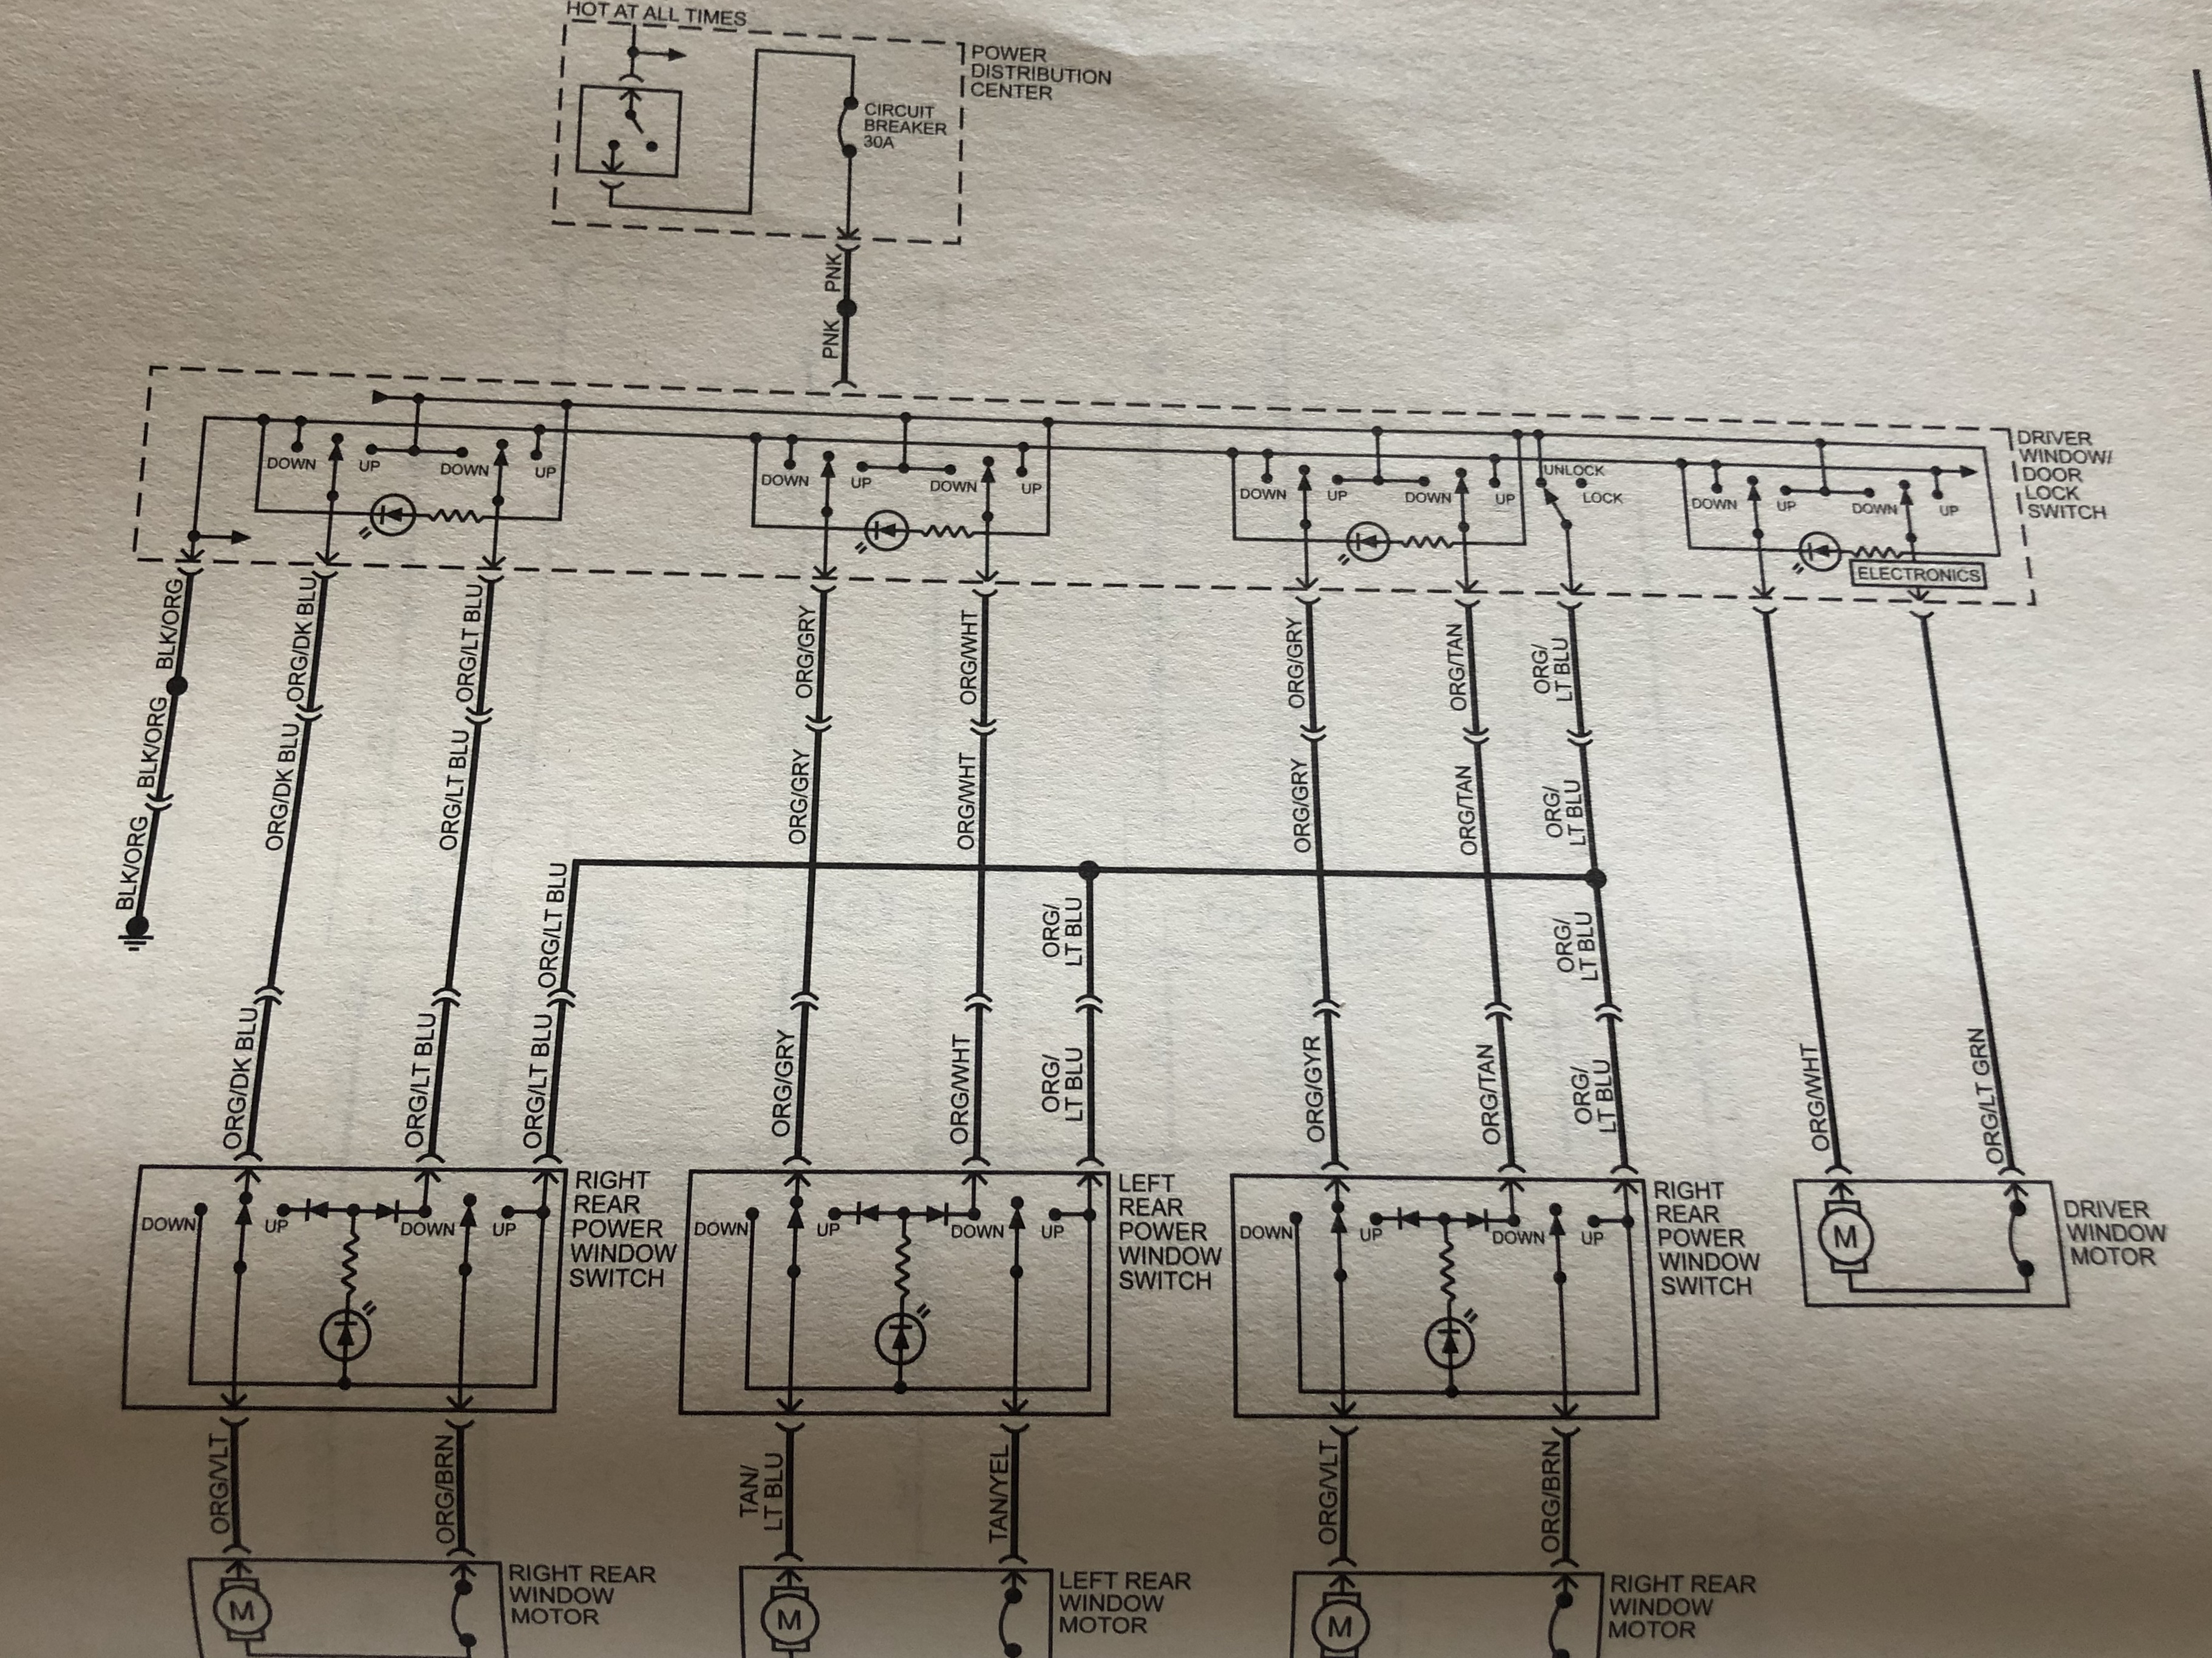 2010 dodge charger wiring diagram help     window wont go up     dodge charger forum  help     window wont go up     dodge